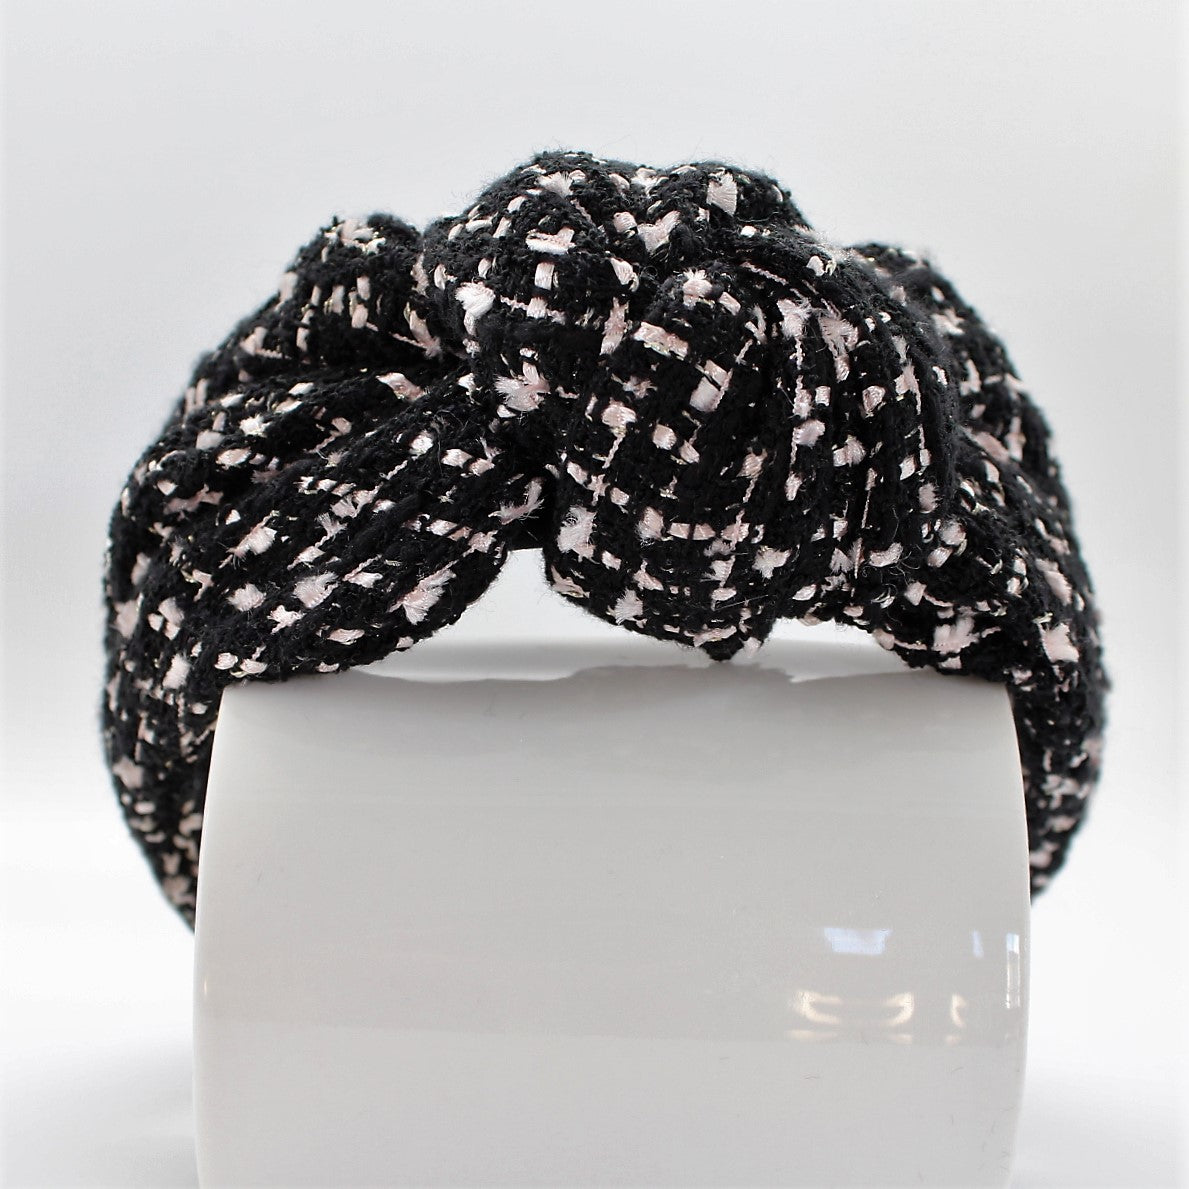 Black and White Tweed Knotted Headband